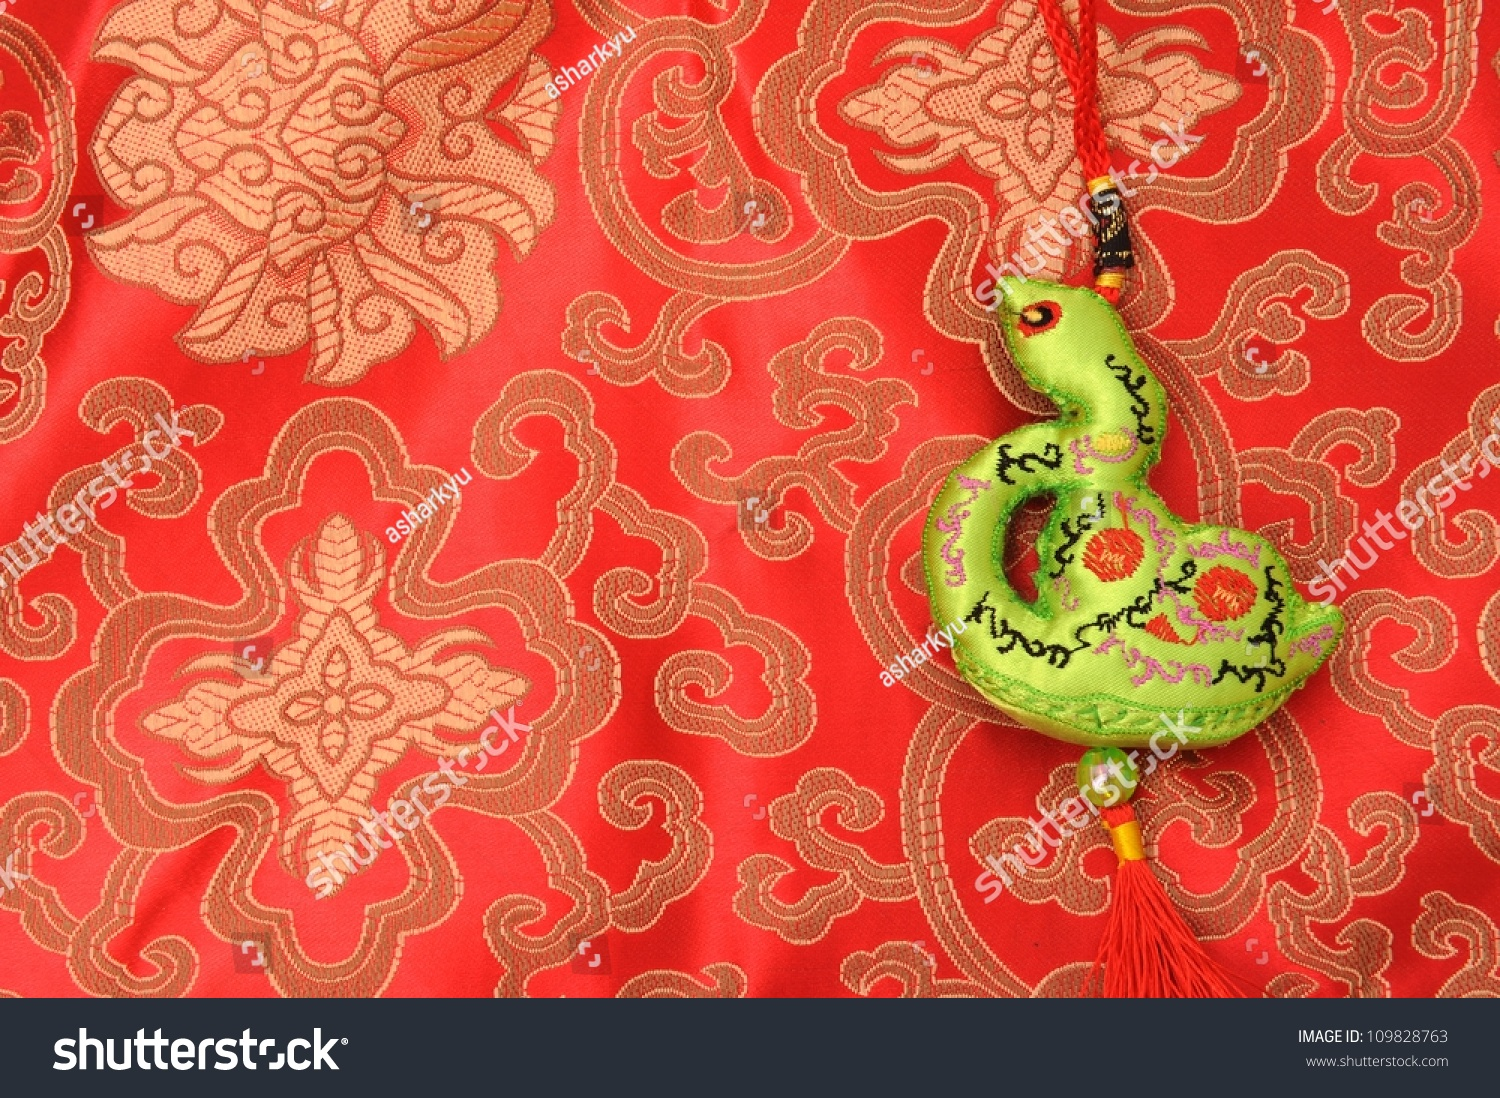 Chinese New Year Of The Snake Stock Photo 109828763 ...